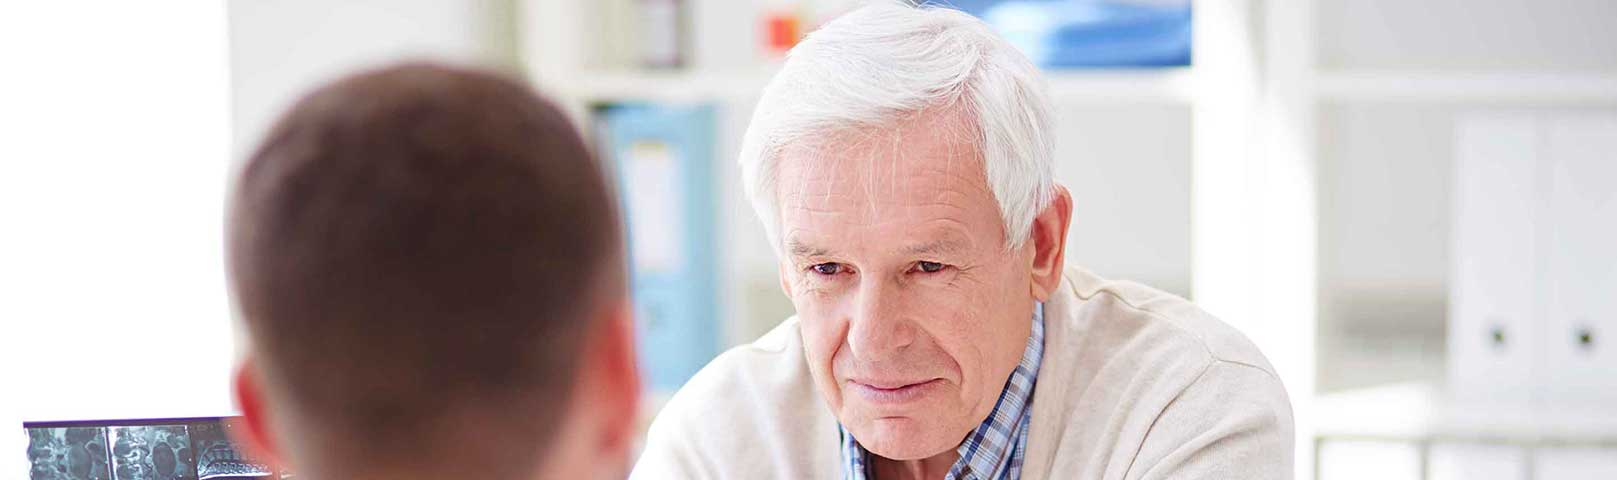 Audiologist talking to a patient about hearing loss